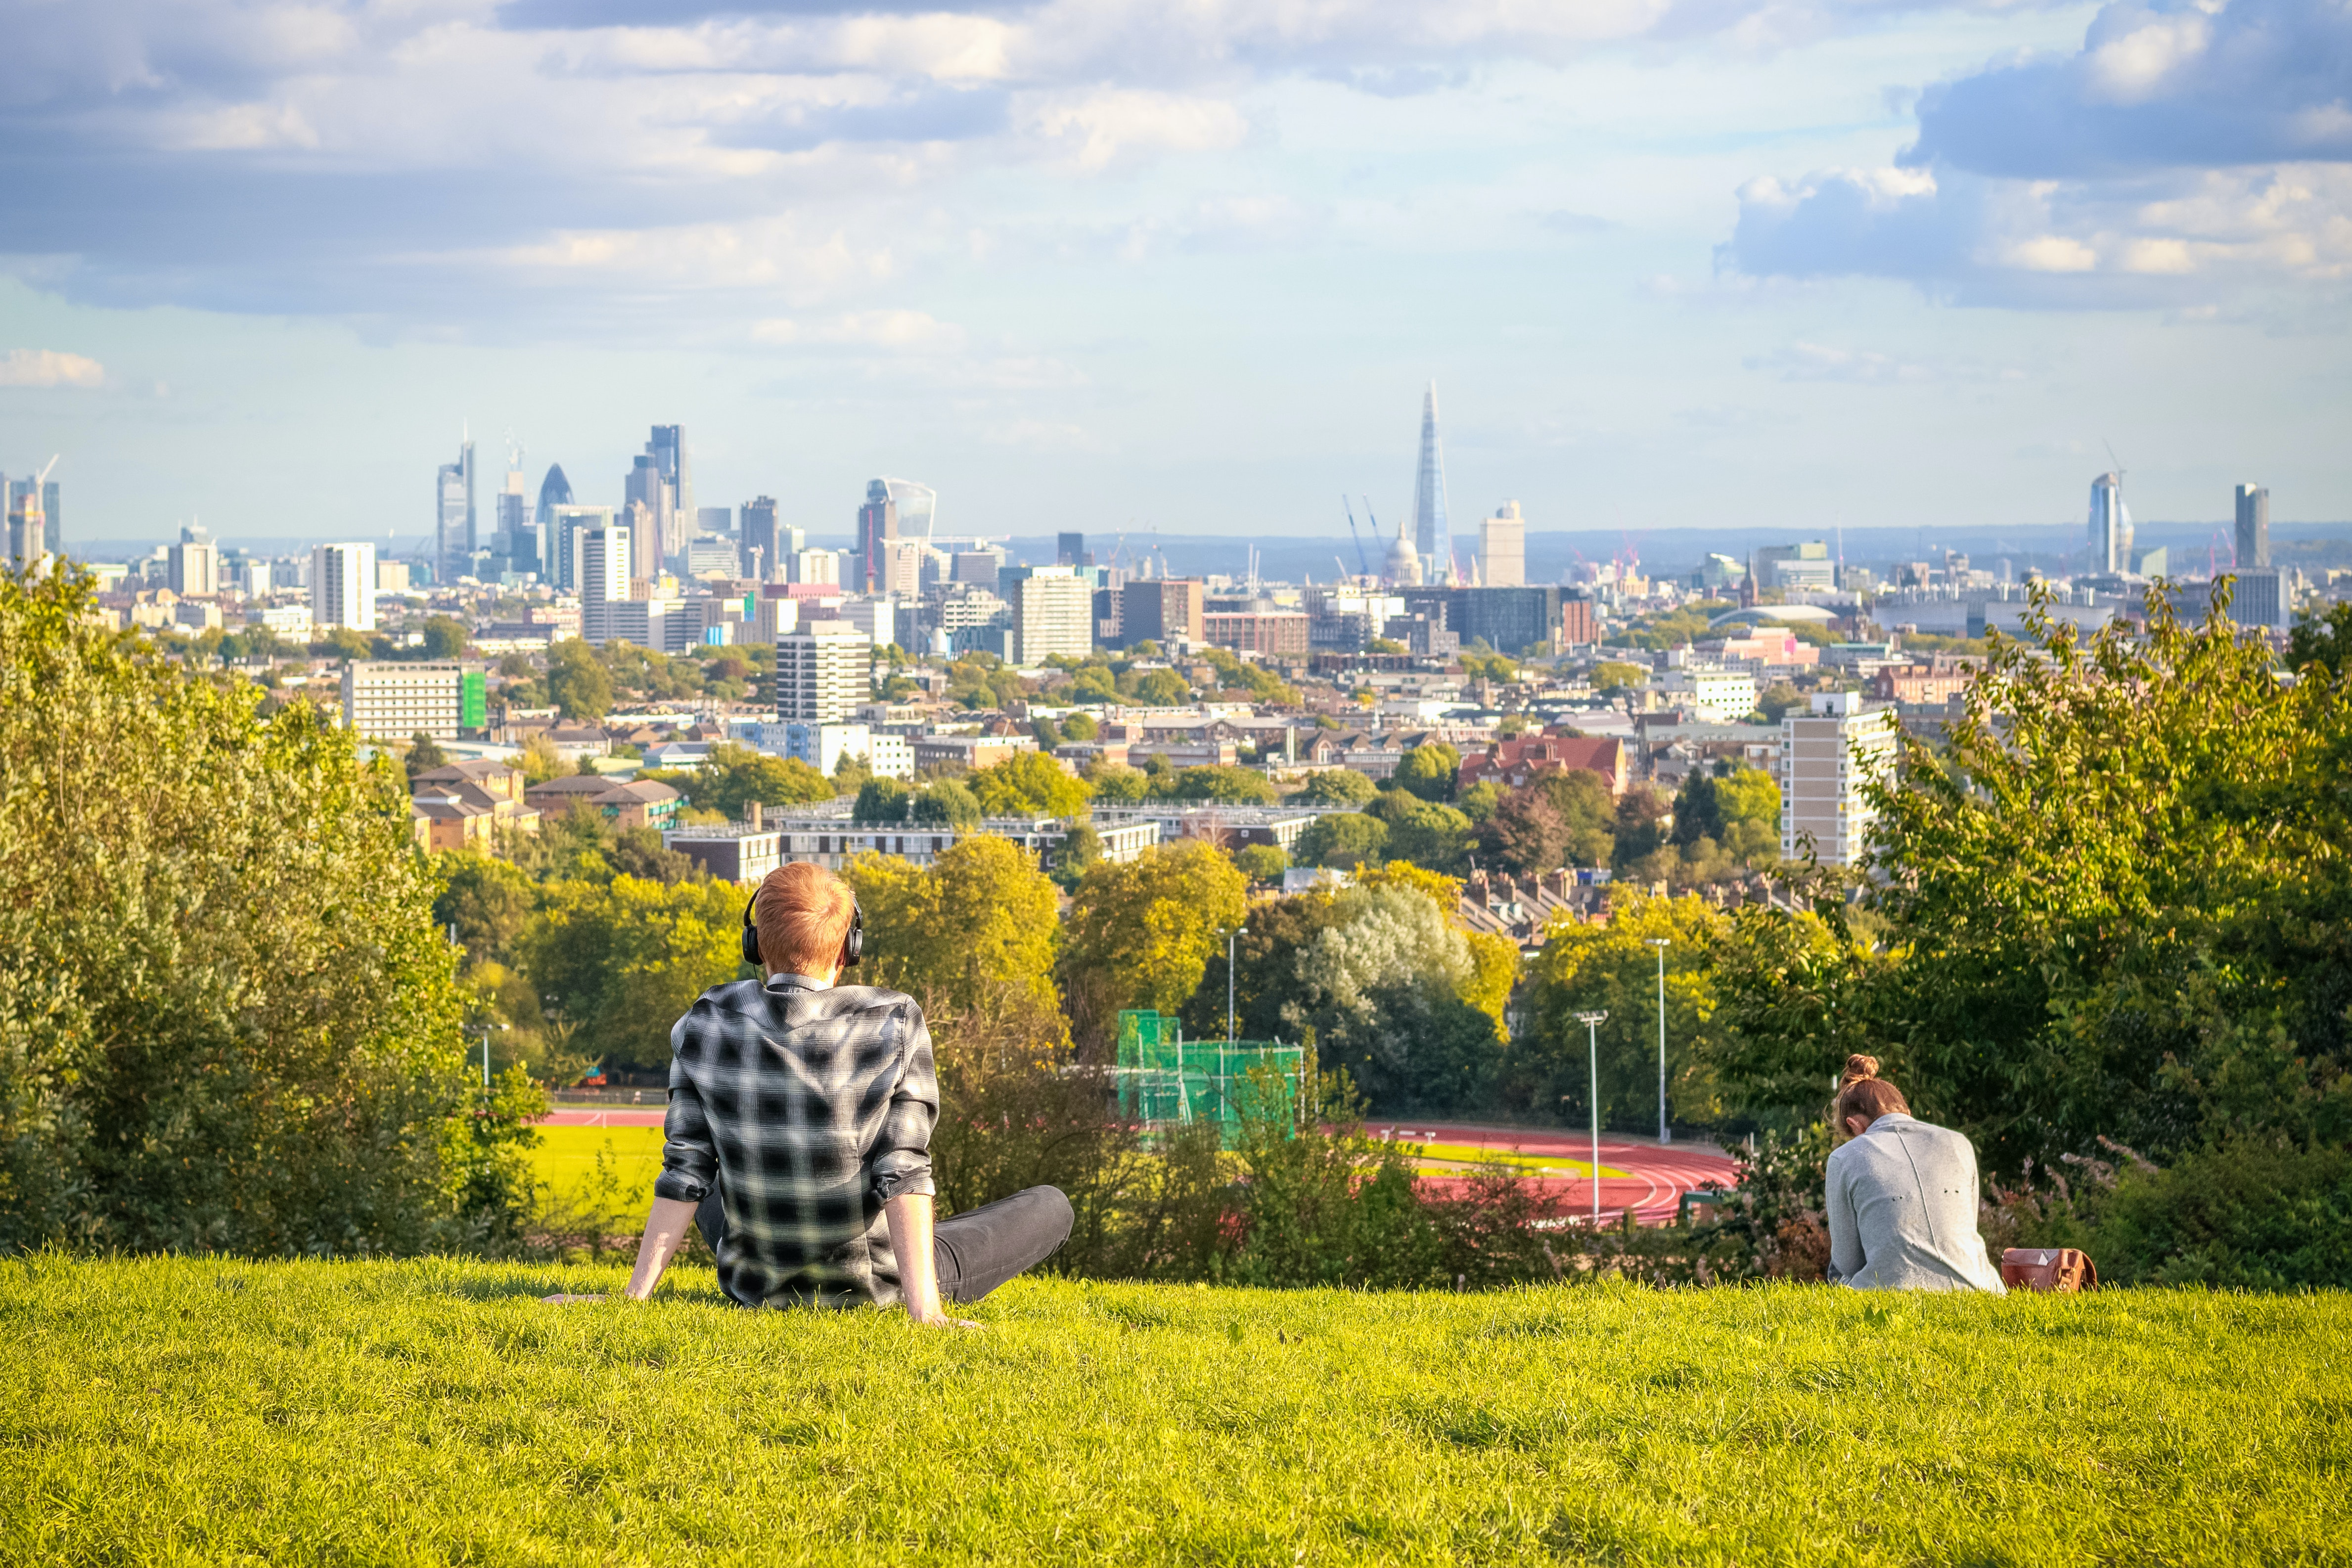 Urban 'forests' can store almost as much carbon as tropical rainforests